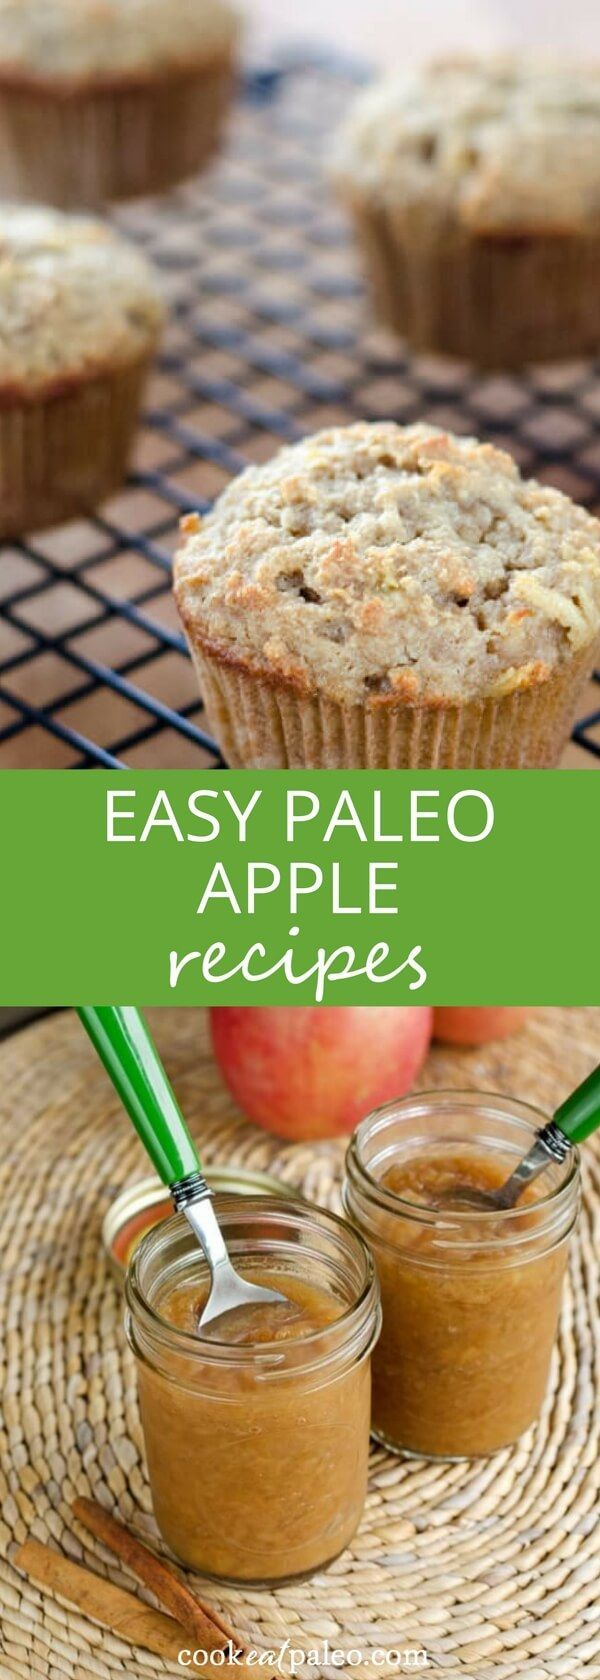 Easy paleo apple recipes—gluten-free versions of all your fall favorites, from a…